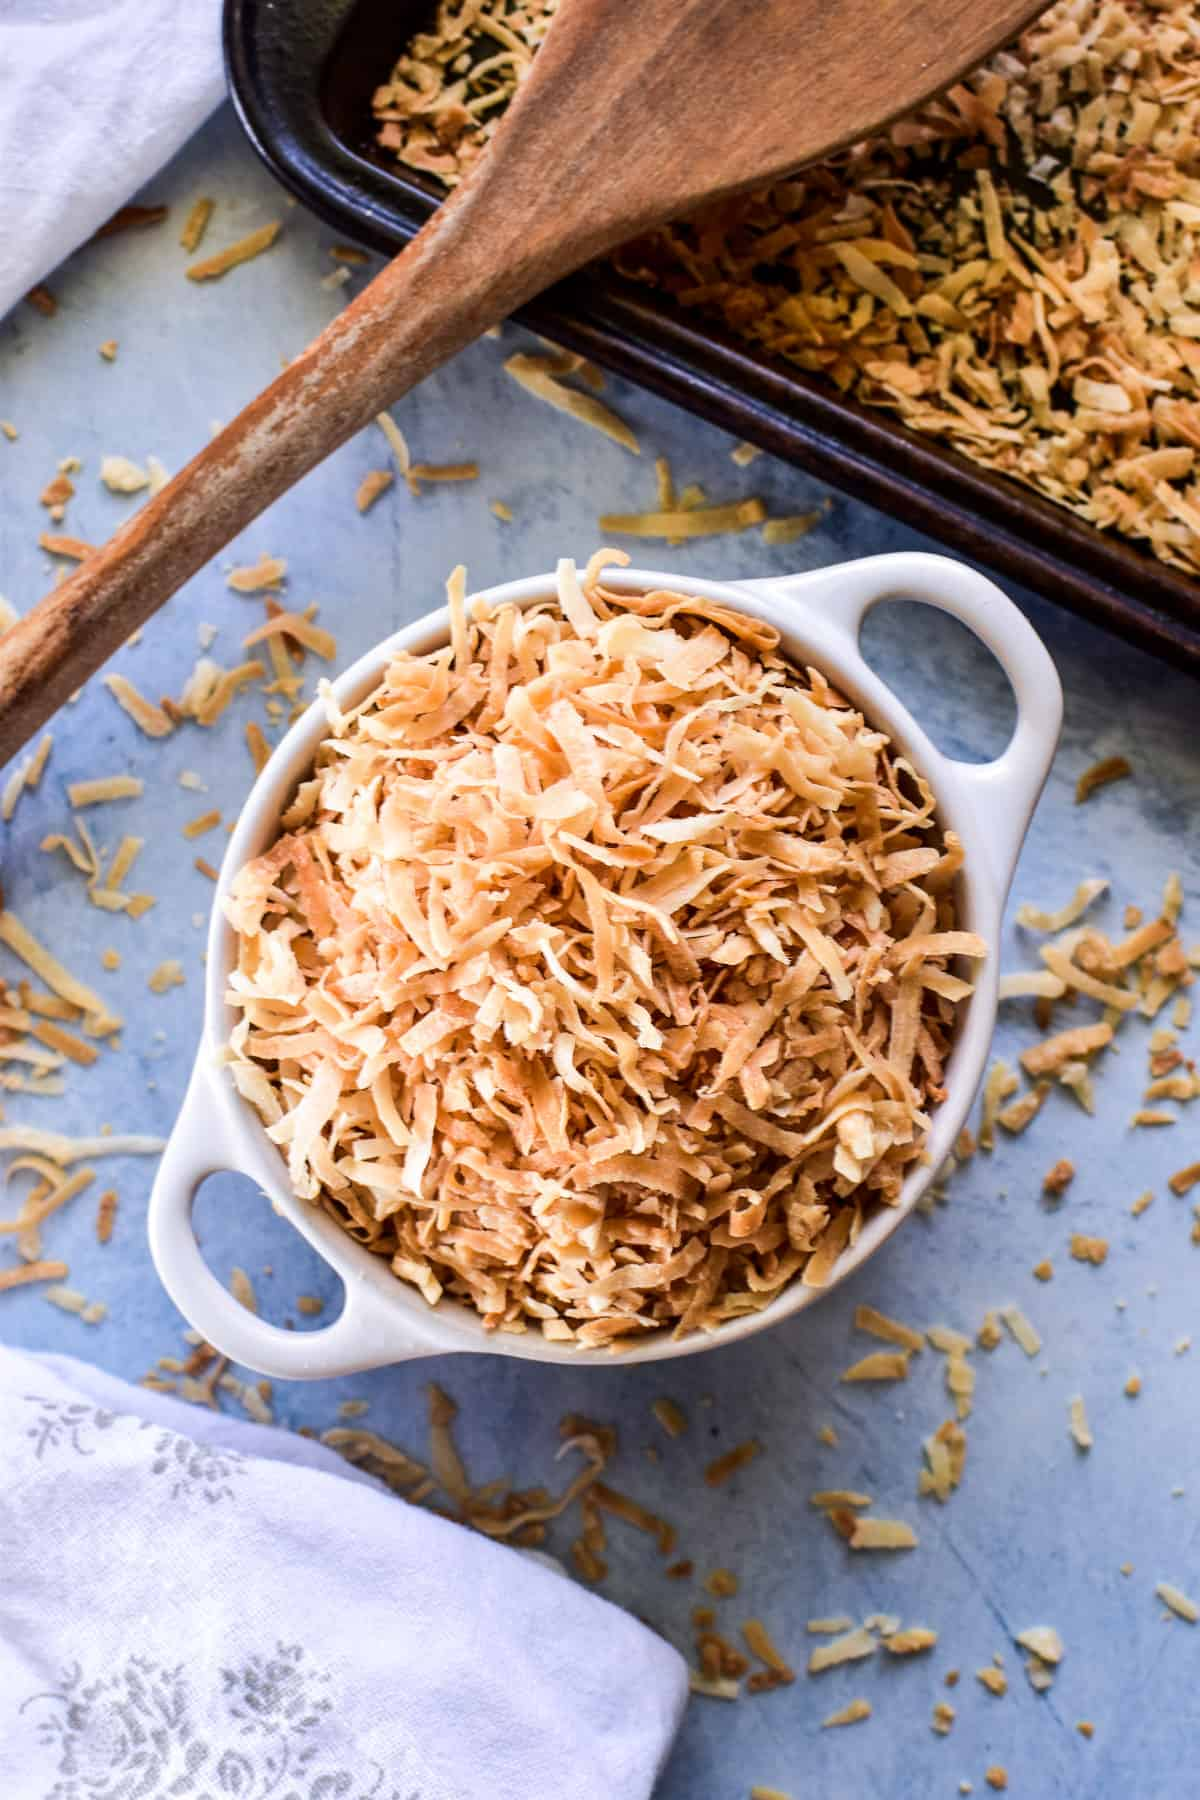 Overhead image of Toasted Coconut in a bowl